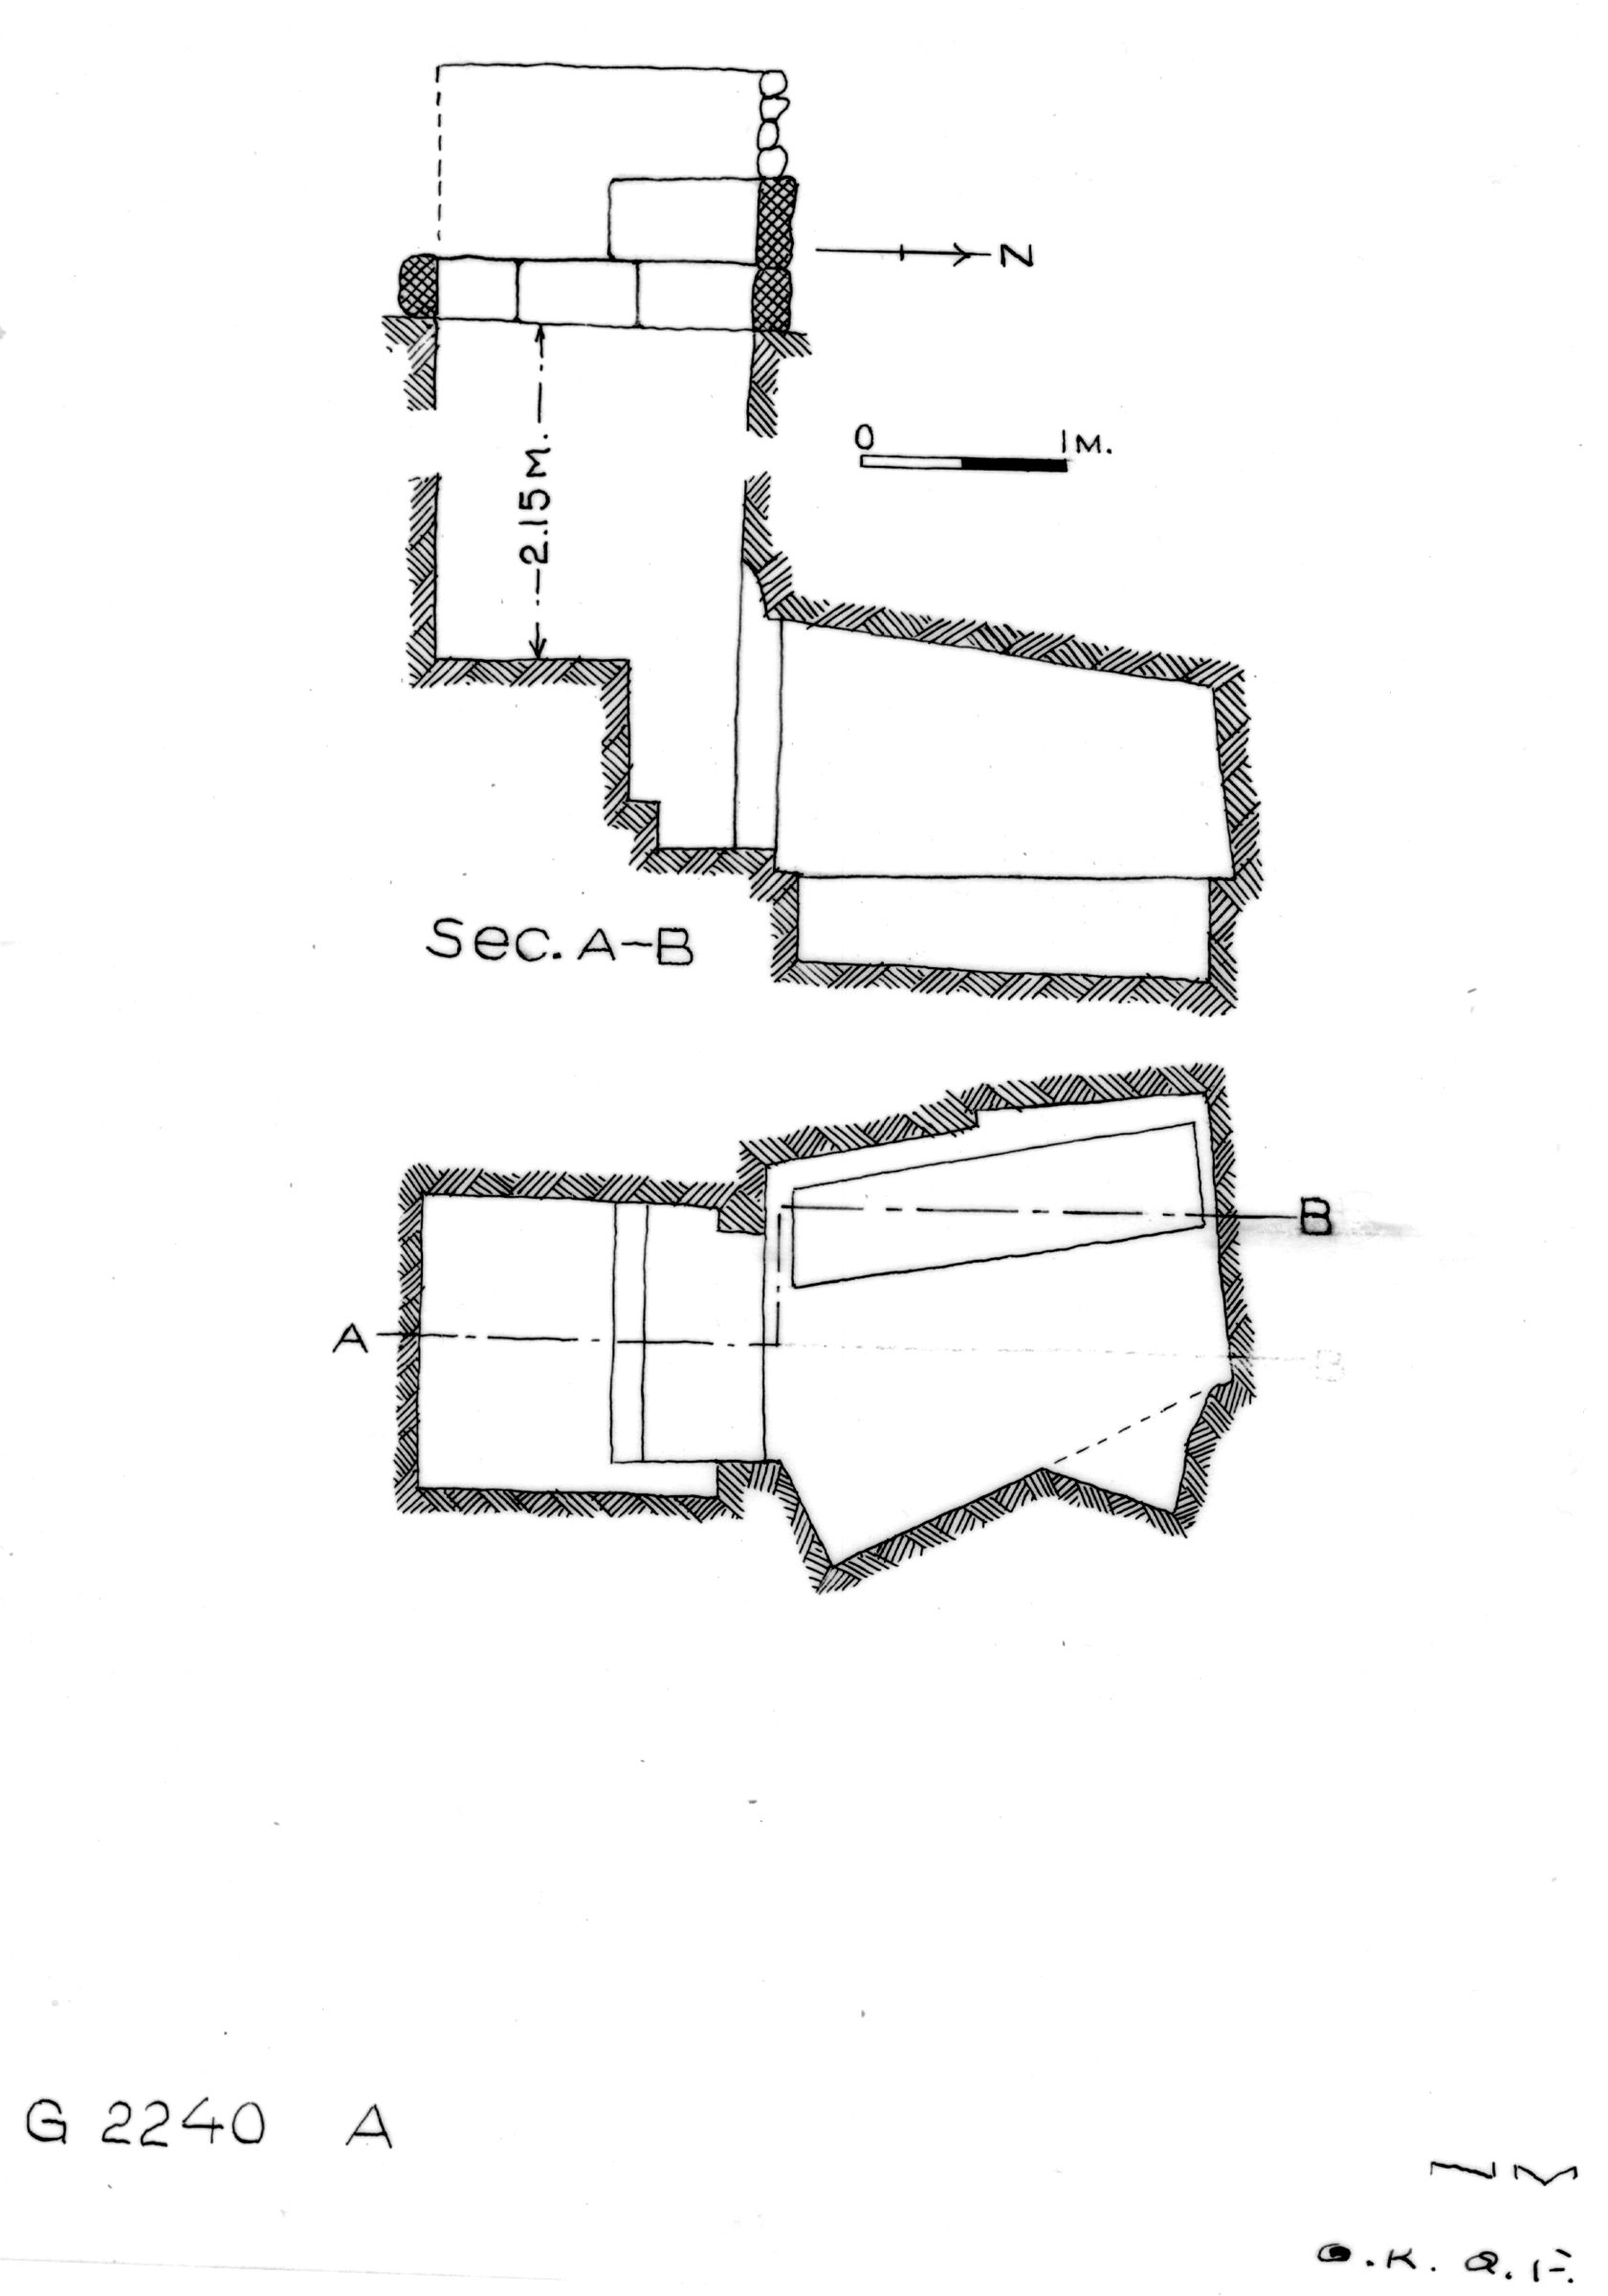 Maps and plans: G 2240, Shaft A